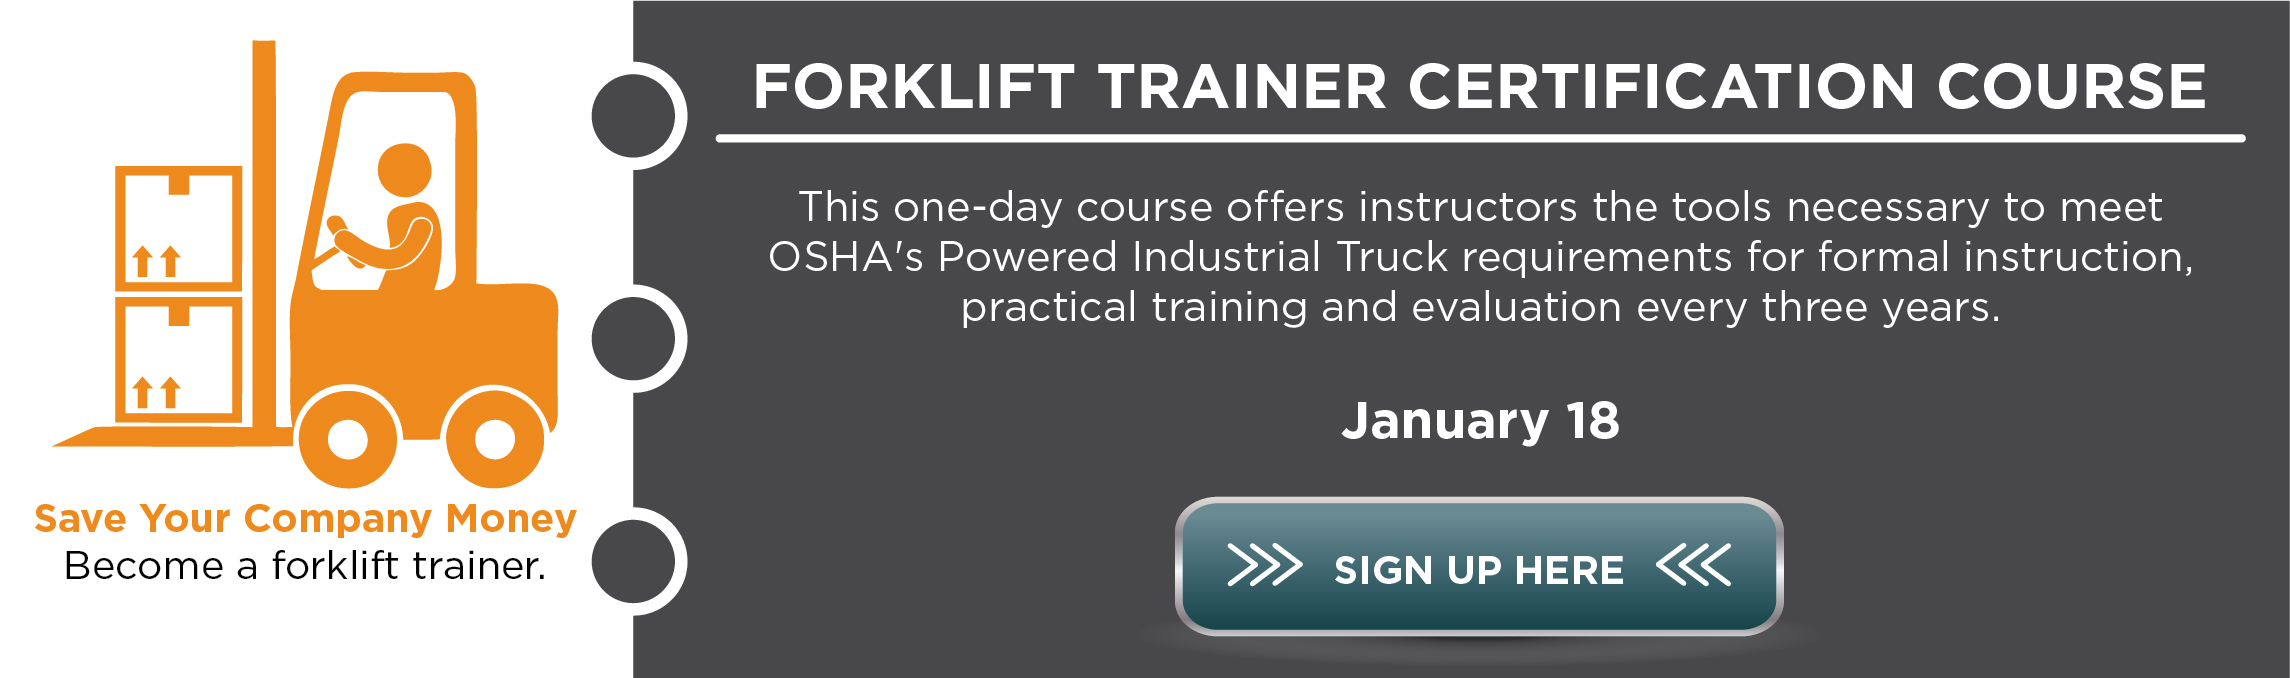 Forklift Trainer Certification Course